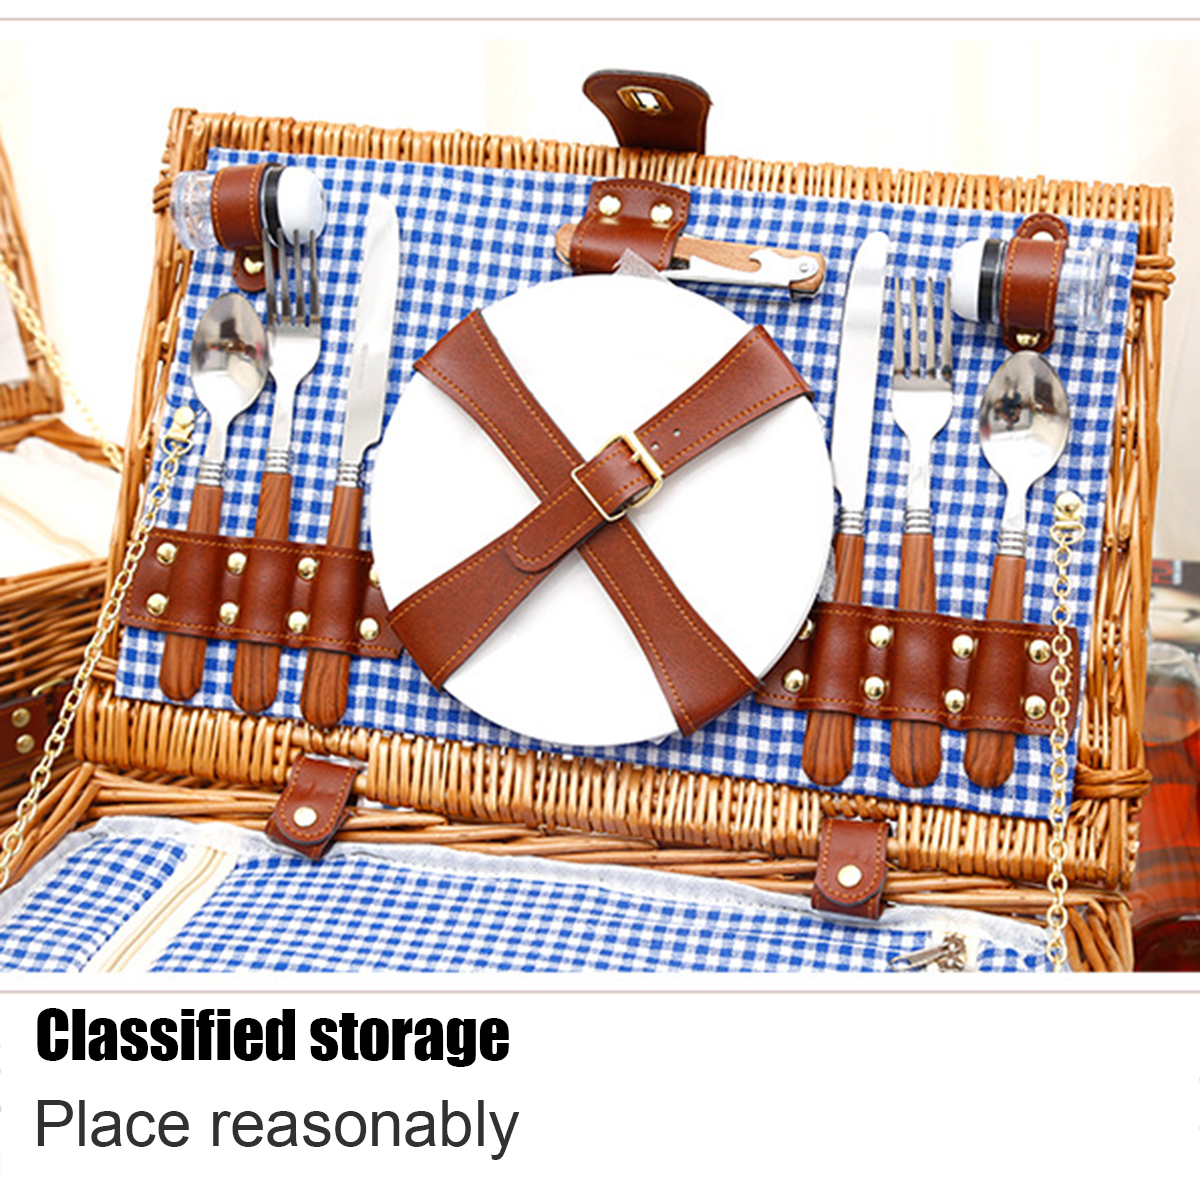 US Outdoor 2 Person Insulated Picnic Basket Wicker Basket Camping Willow Handbag